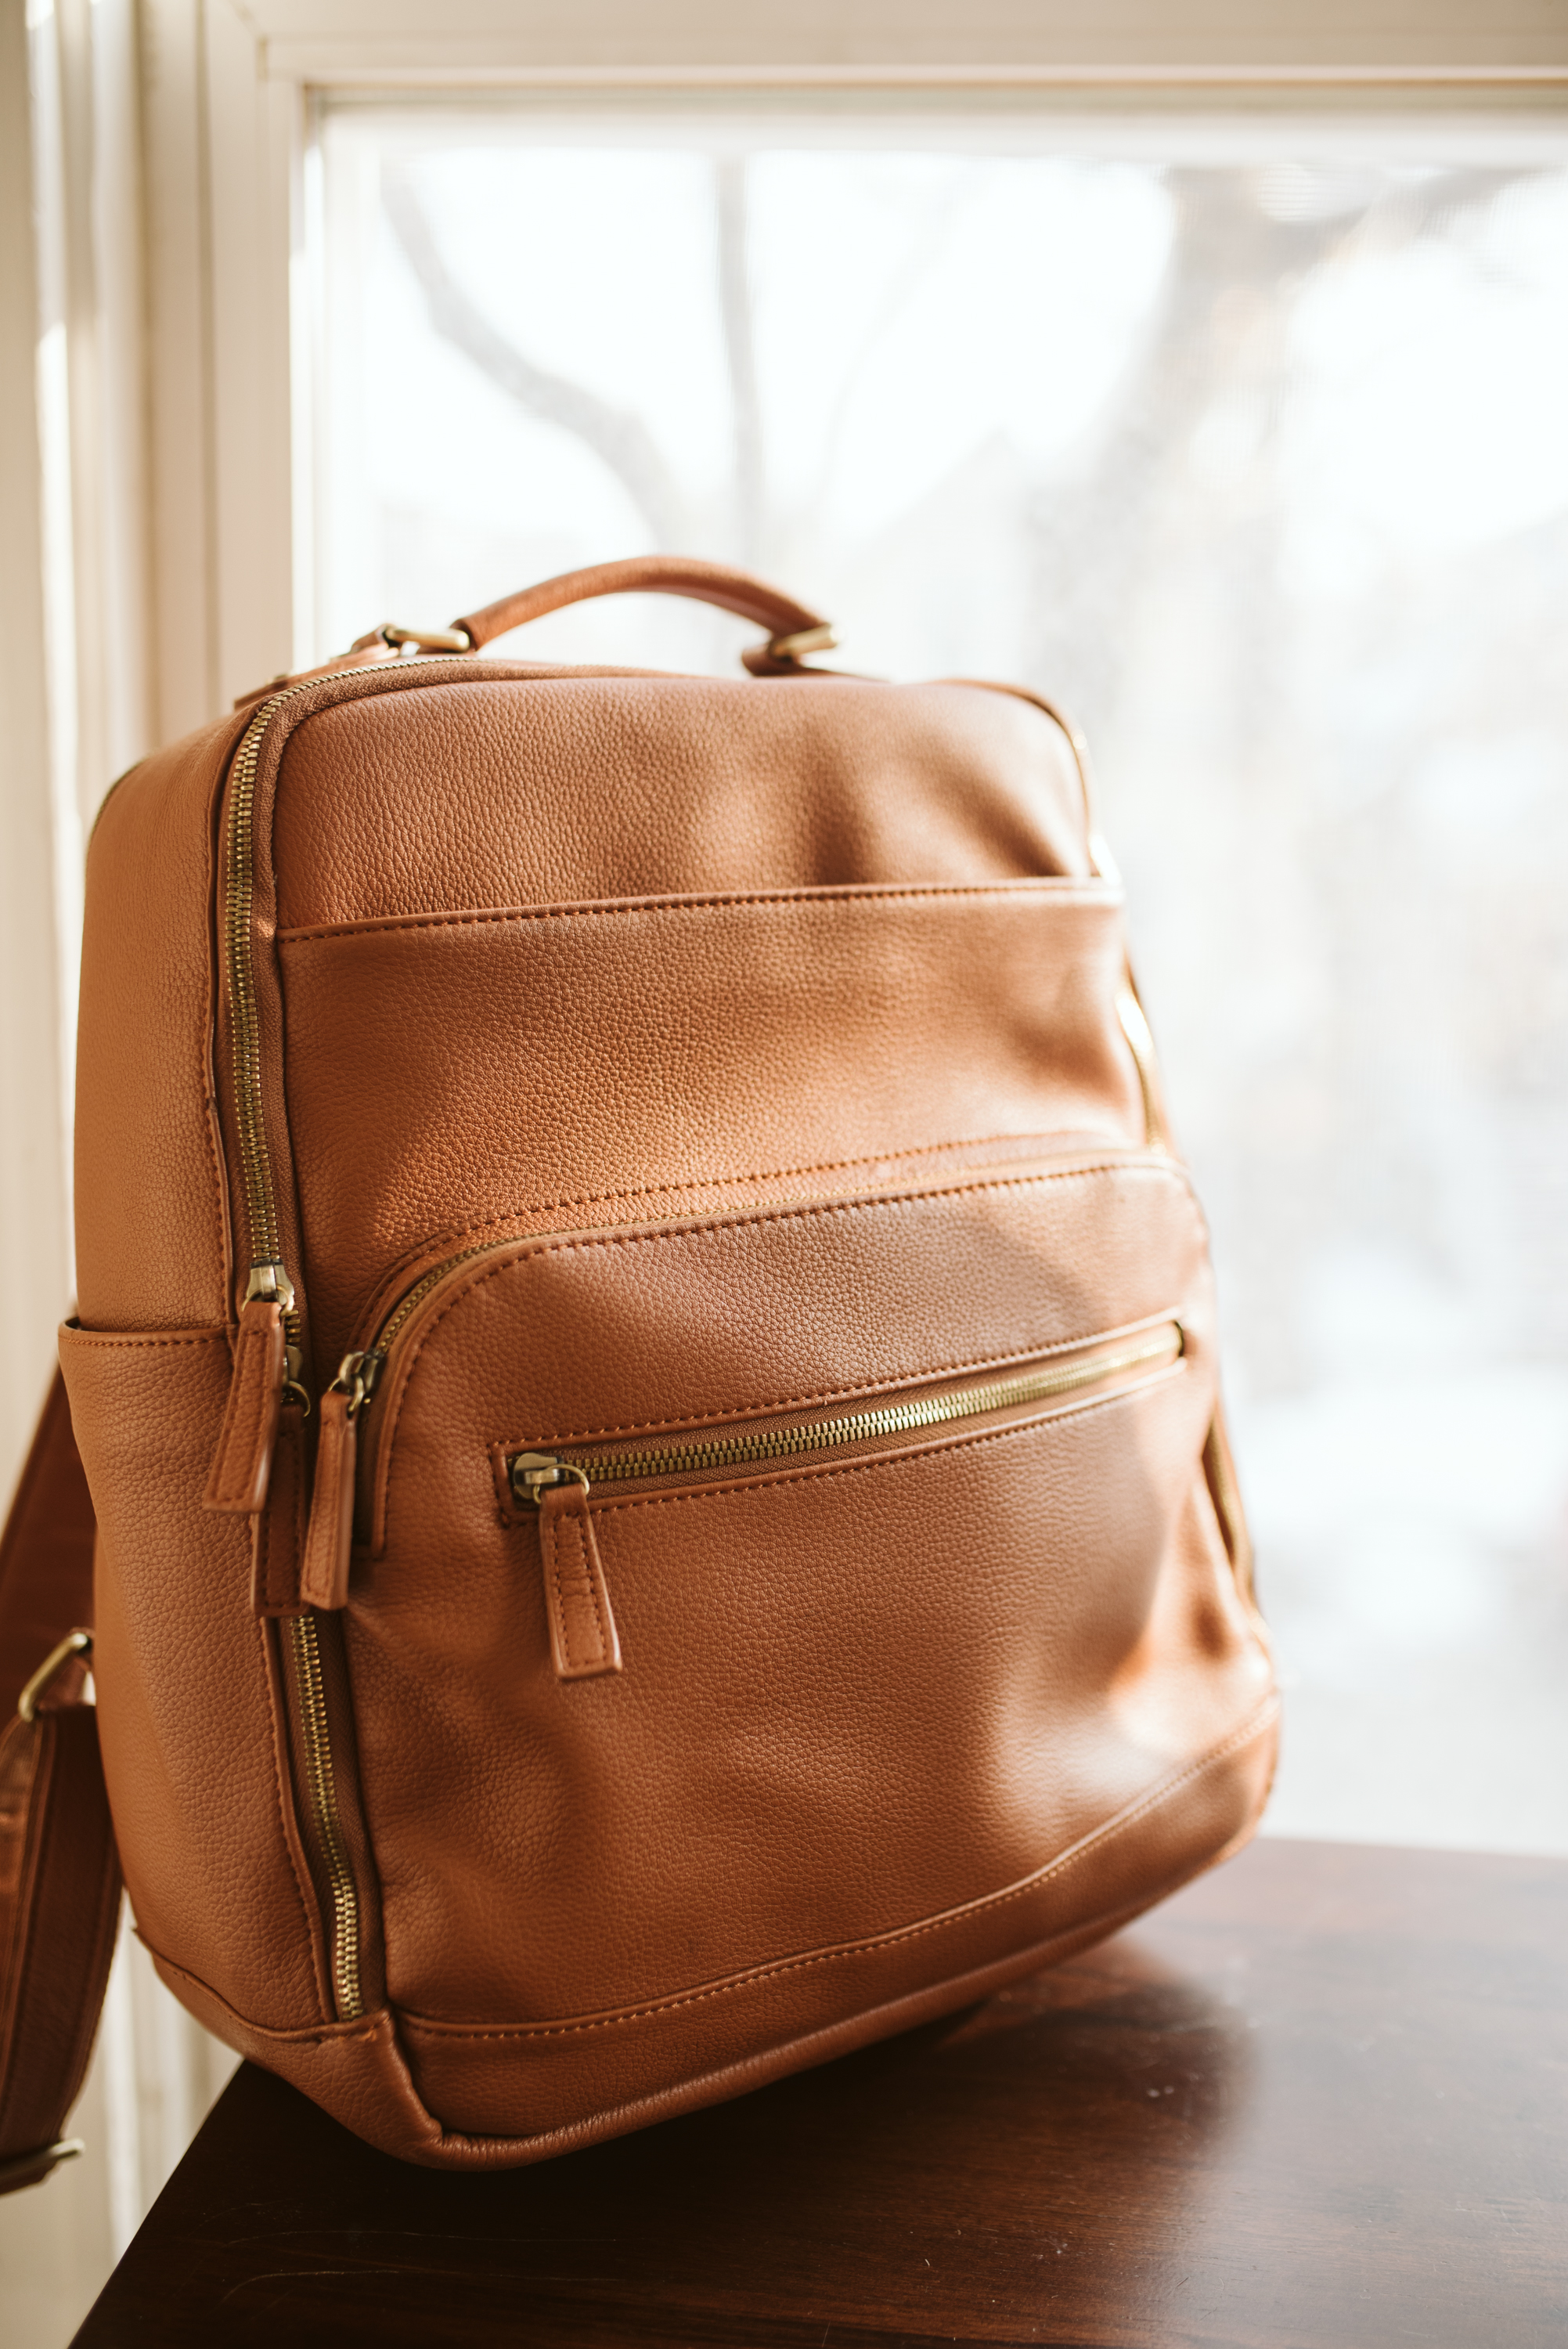 Kamrette Lyra Backpack $169